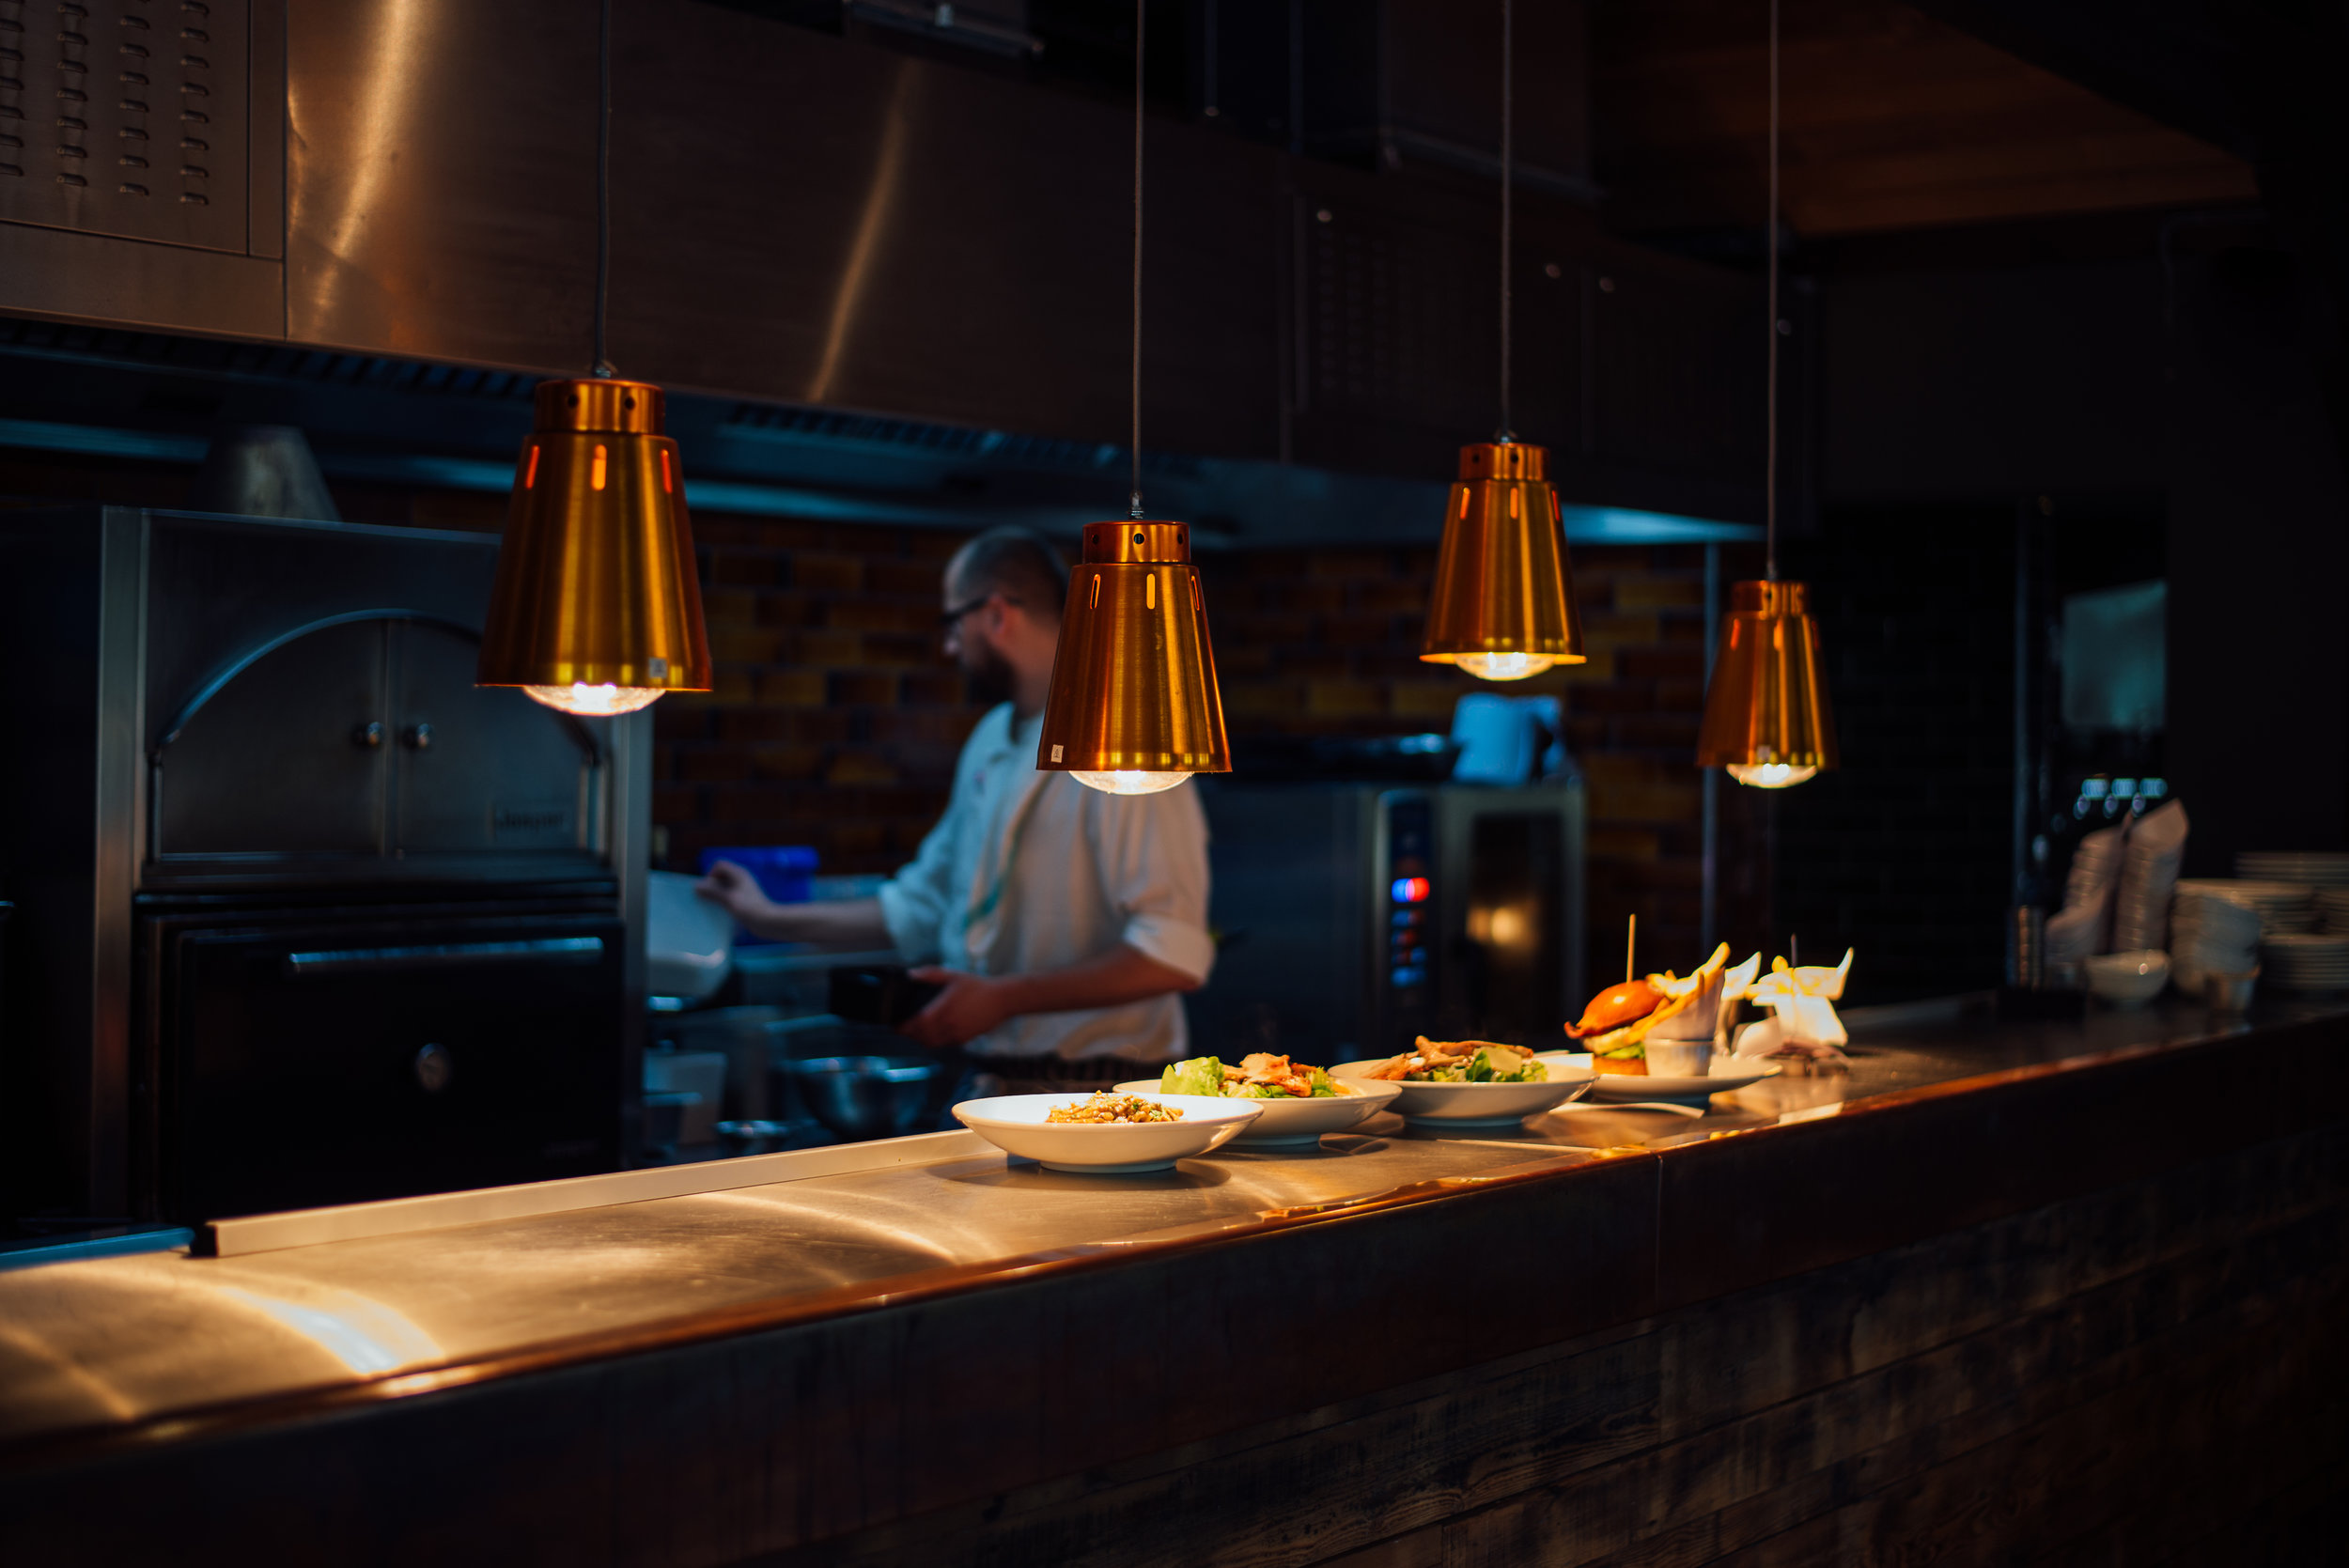 KITCHEN_PASS_CHEF_HEAT_LAMPS_LANDSCAPE.jpg